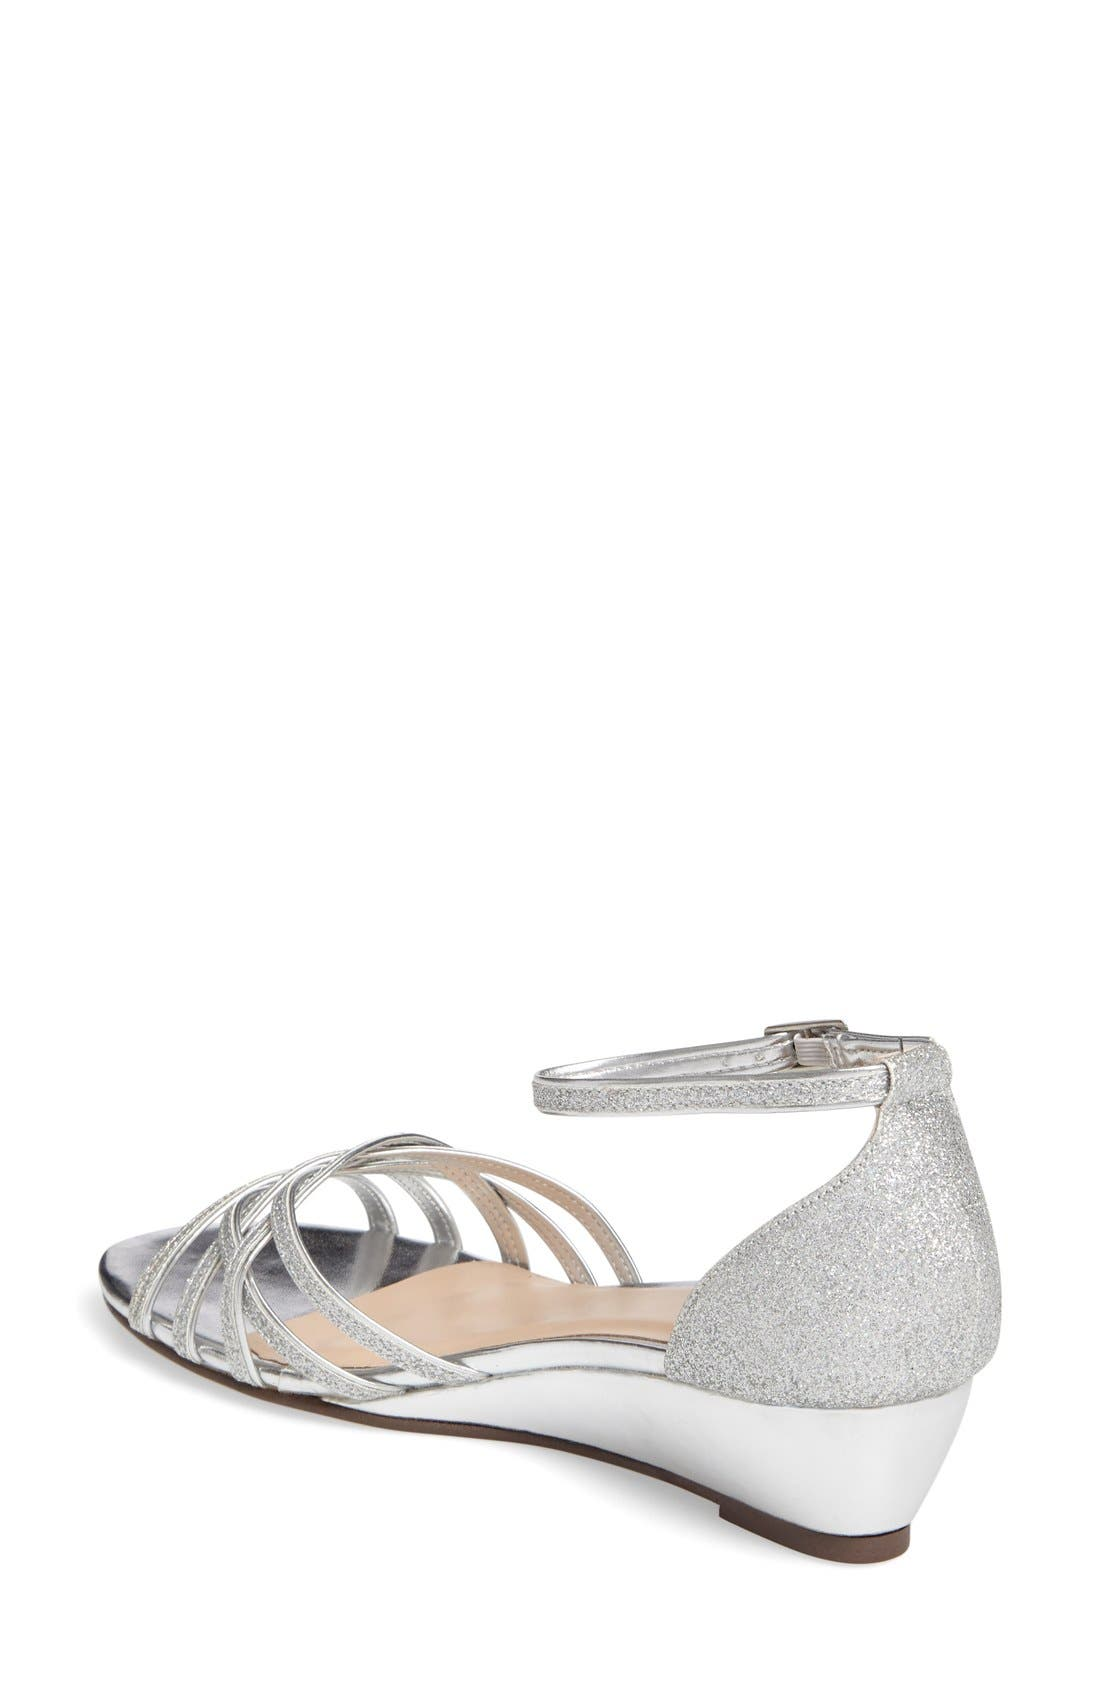 Avery Wedge Sandal,                             Alternate thumbnail 2, color,                             SILVER